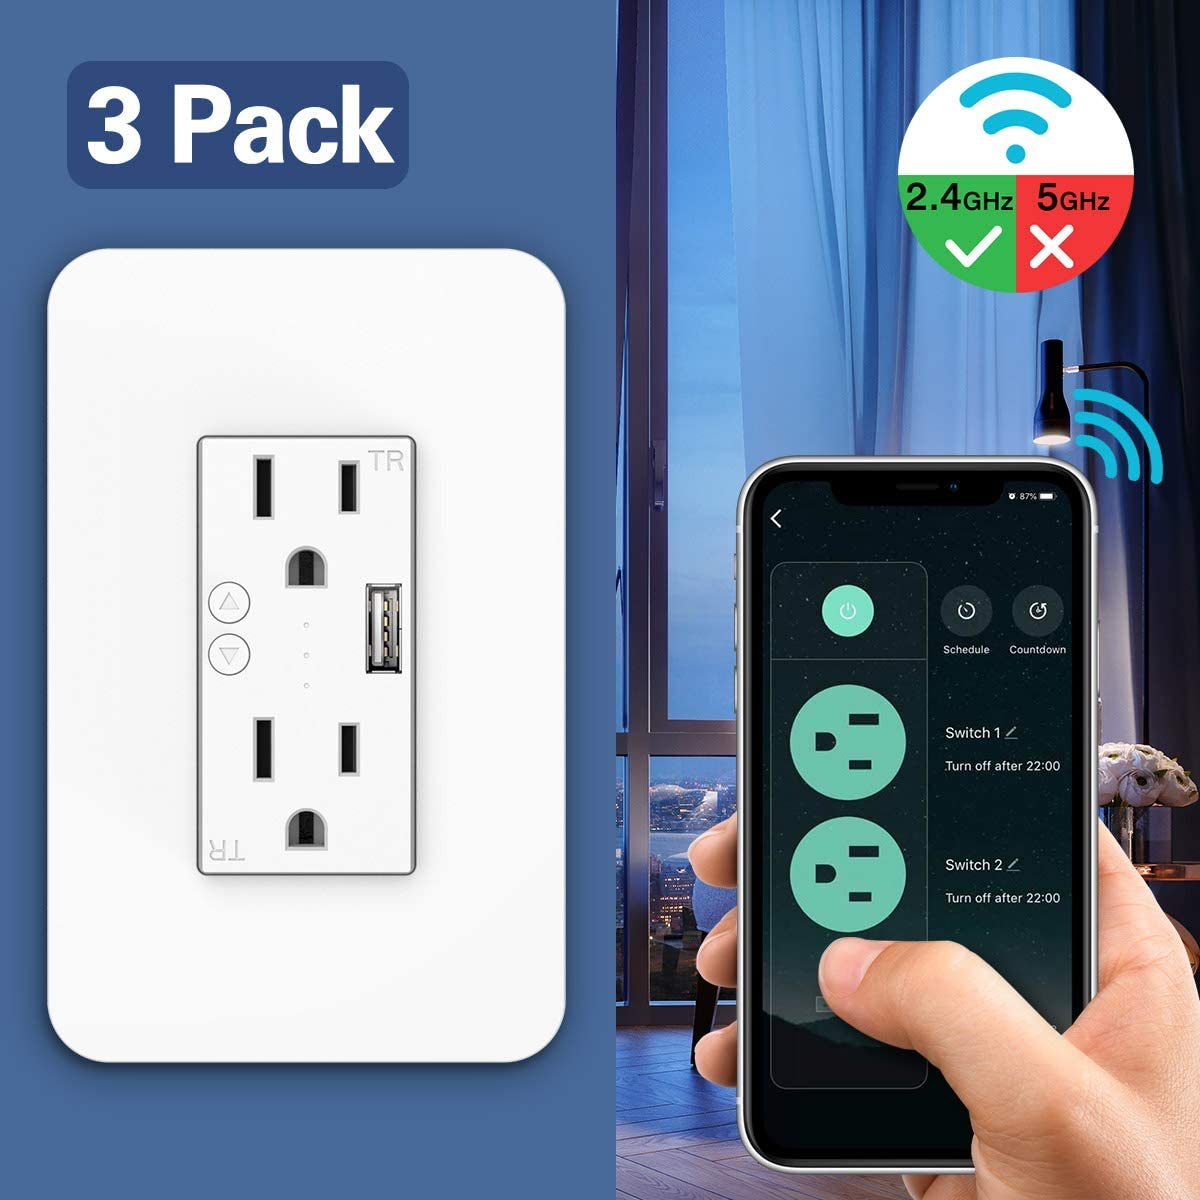 MoKo Smart WiFi In-wall Socket with 2 Outlets 1 USB Charging Port 15A Electrical Smart In Wall Timer Plug Work with Alexa Echo Google Home SmartThings Remote control Timing function,Only 2.4GHz,6 Pack